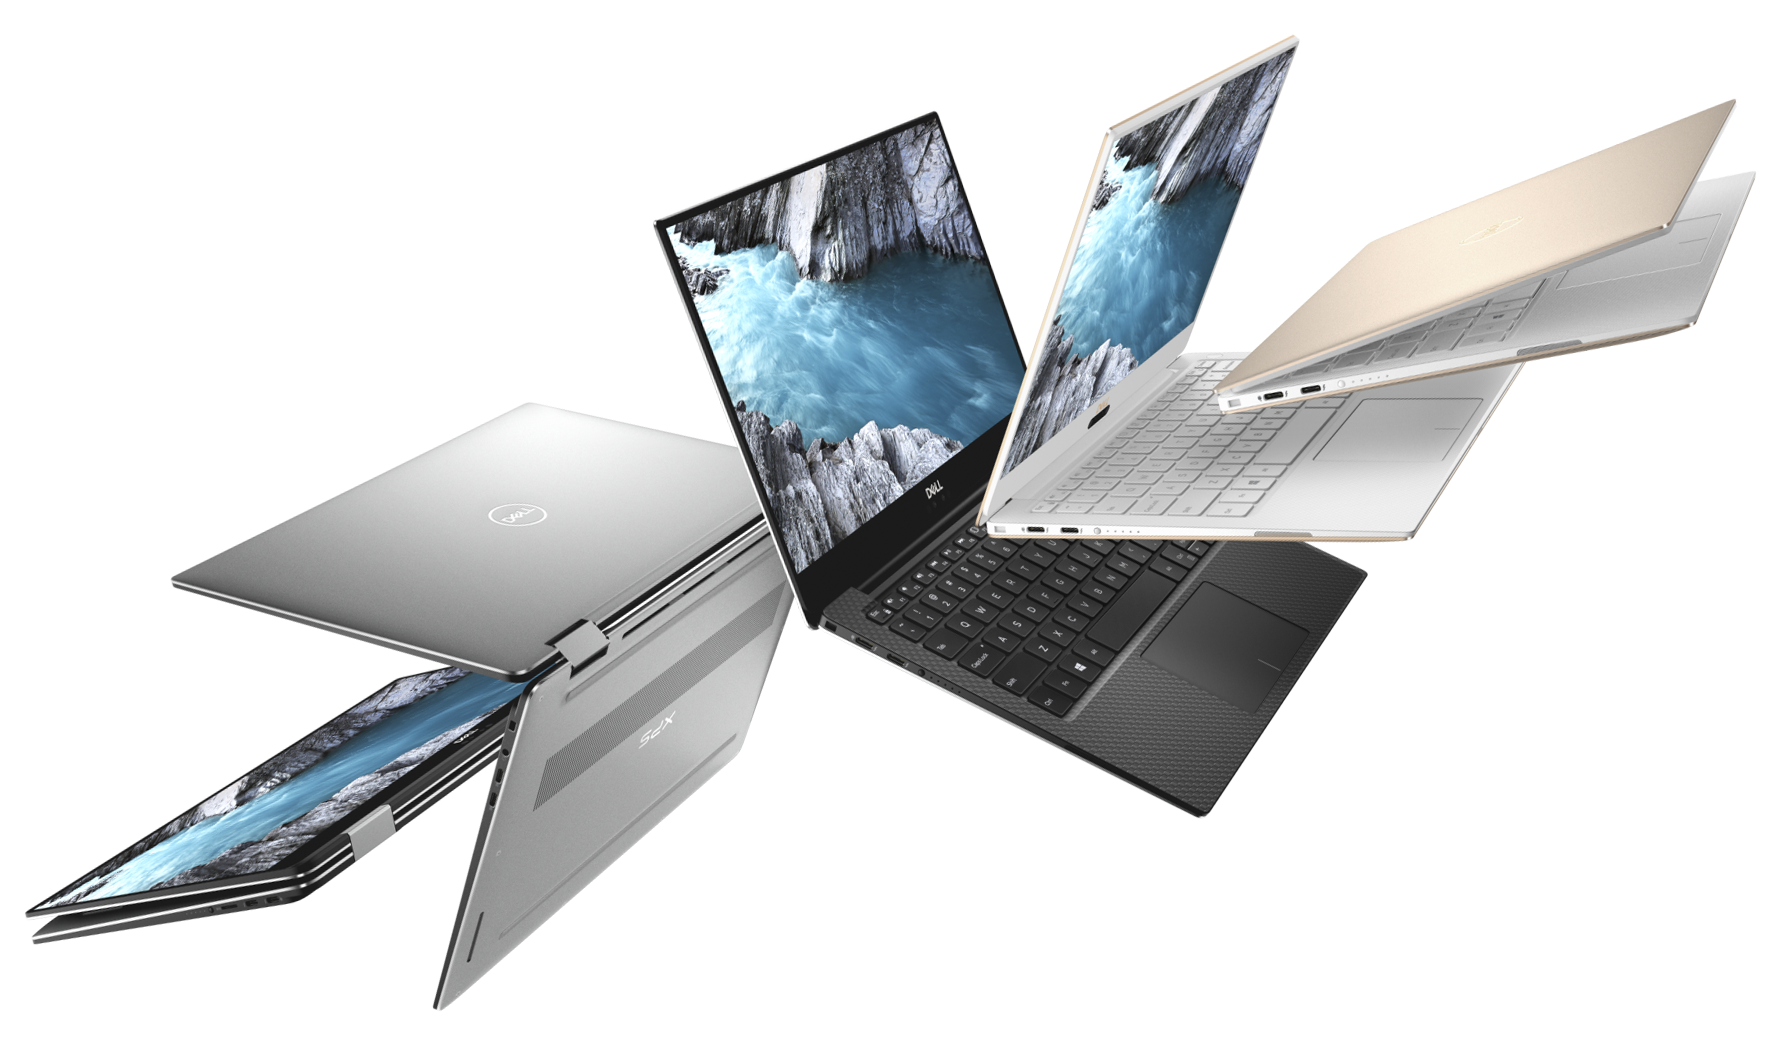 2018 LAPTOPS IMPRESS AT CES IN LAS VEGAS | Tech Untangled